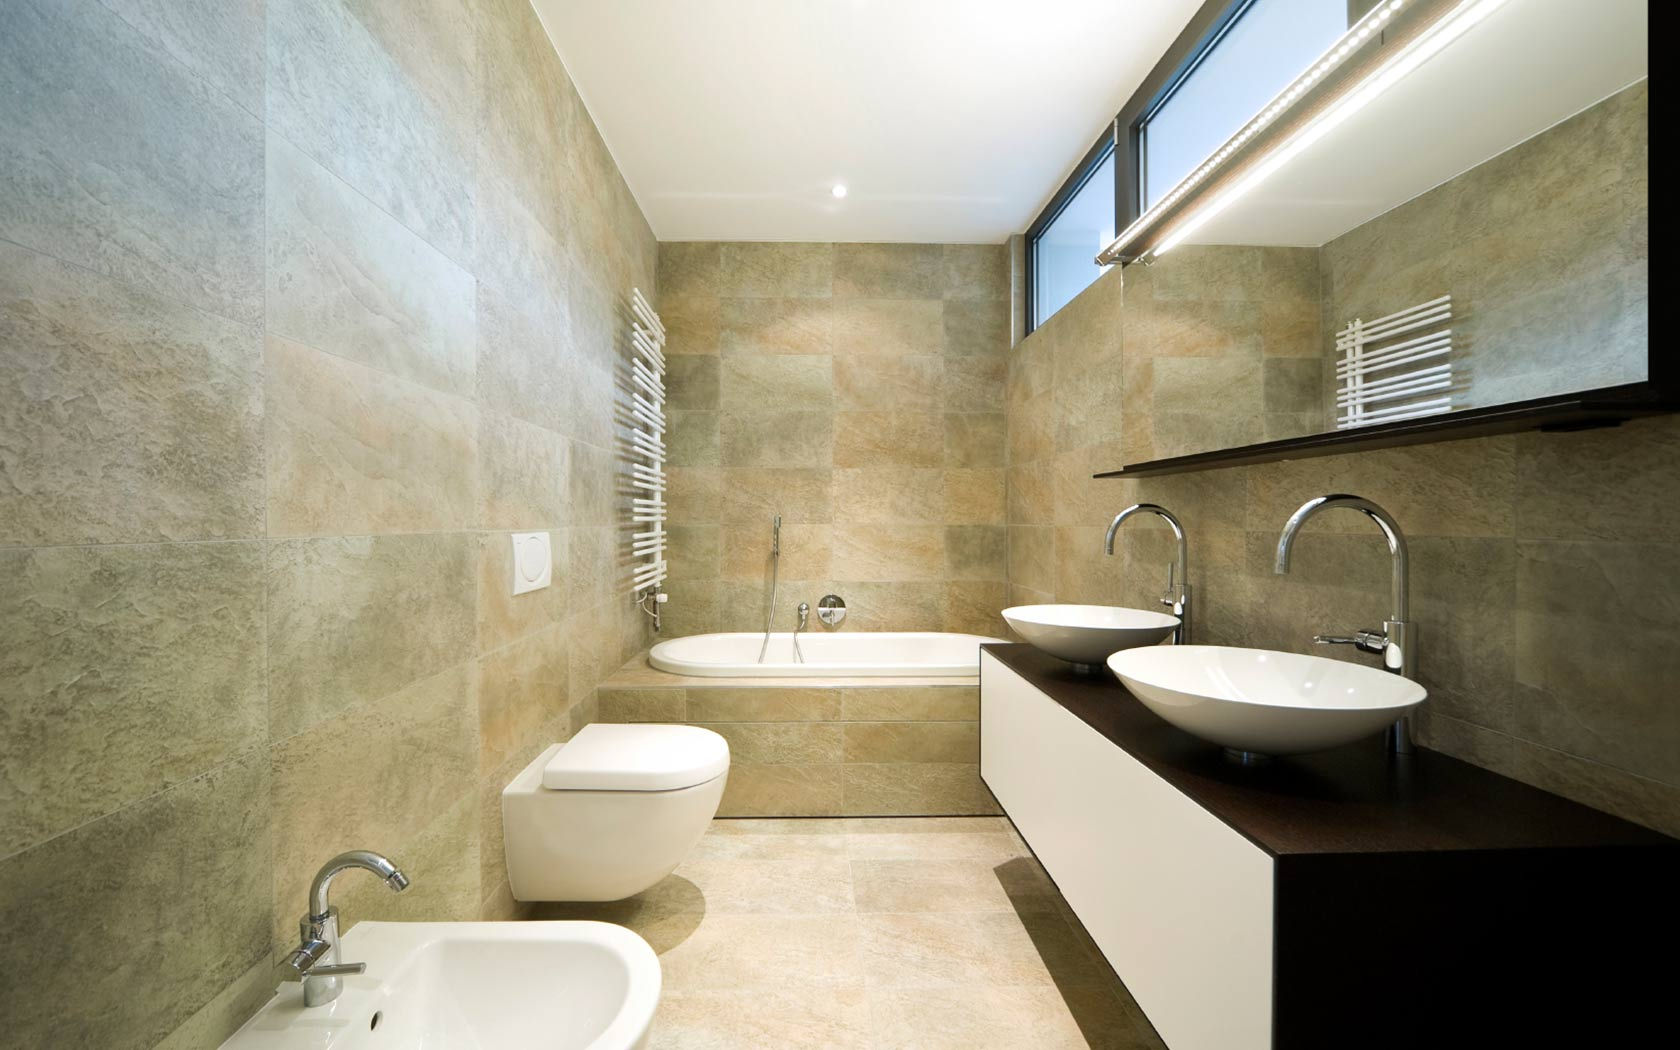 Bathroom installation bronx ny bathtub reglazers Bathroom design winchester uk